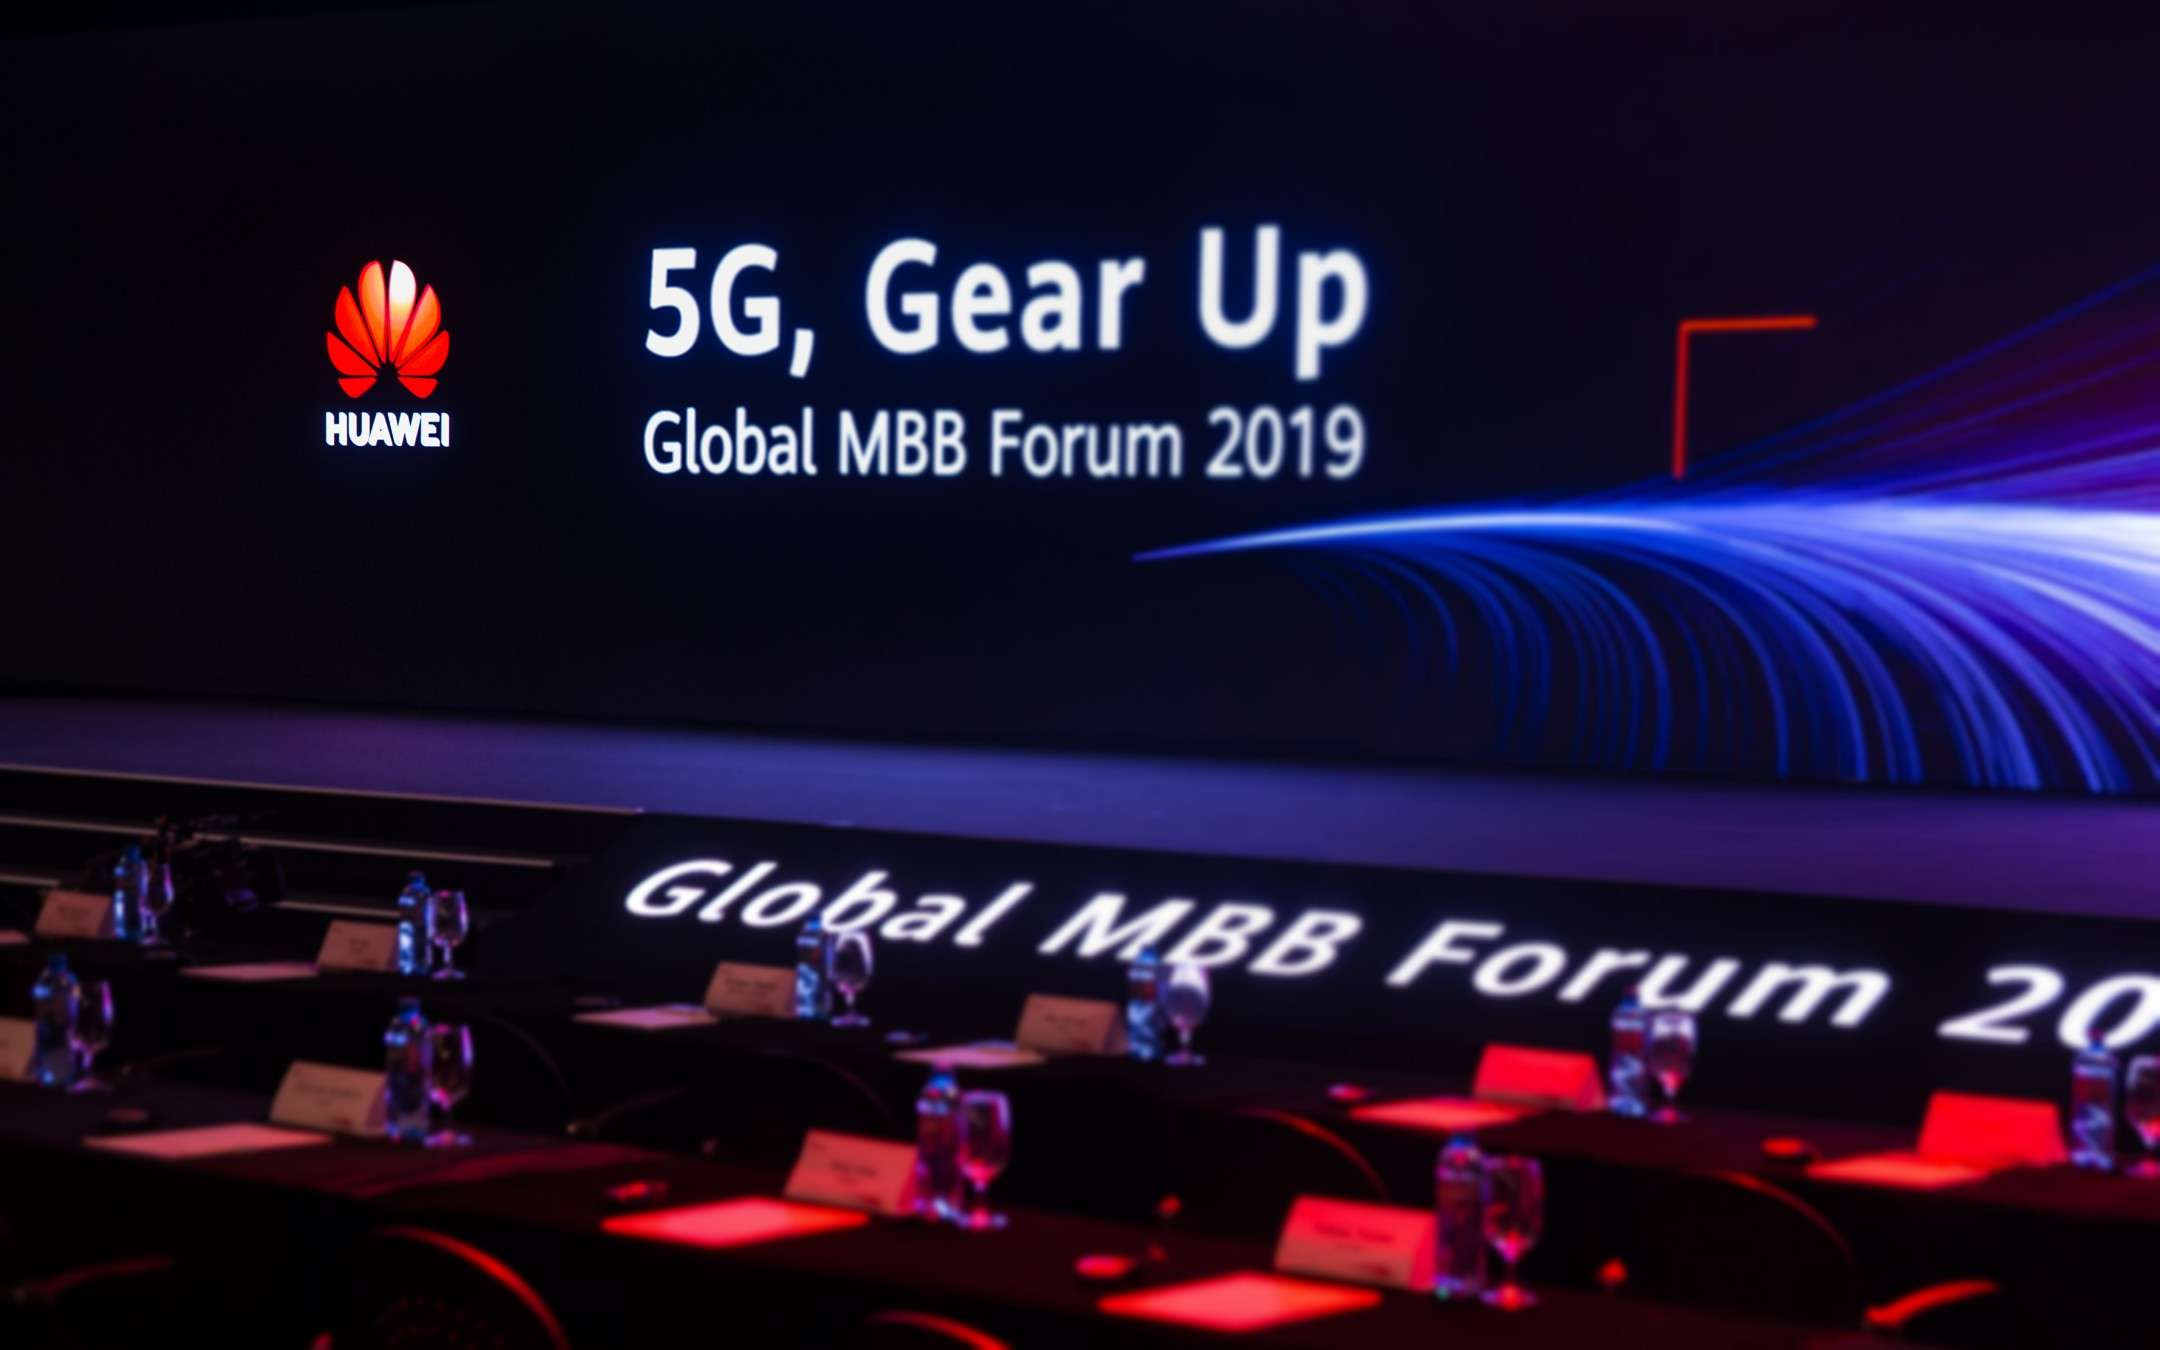 5G e Huawei a Global Mobile Broadband Forum